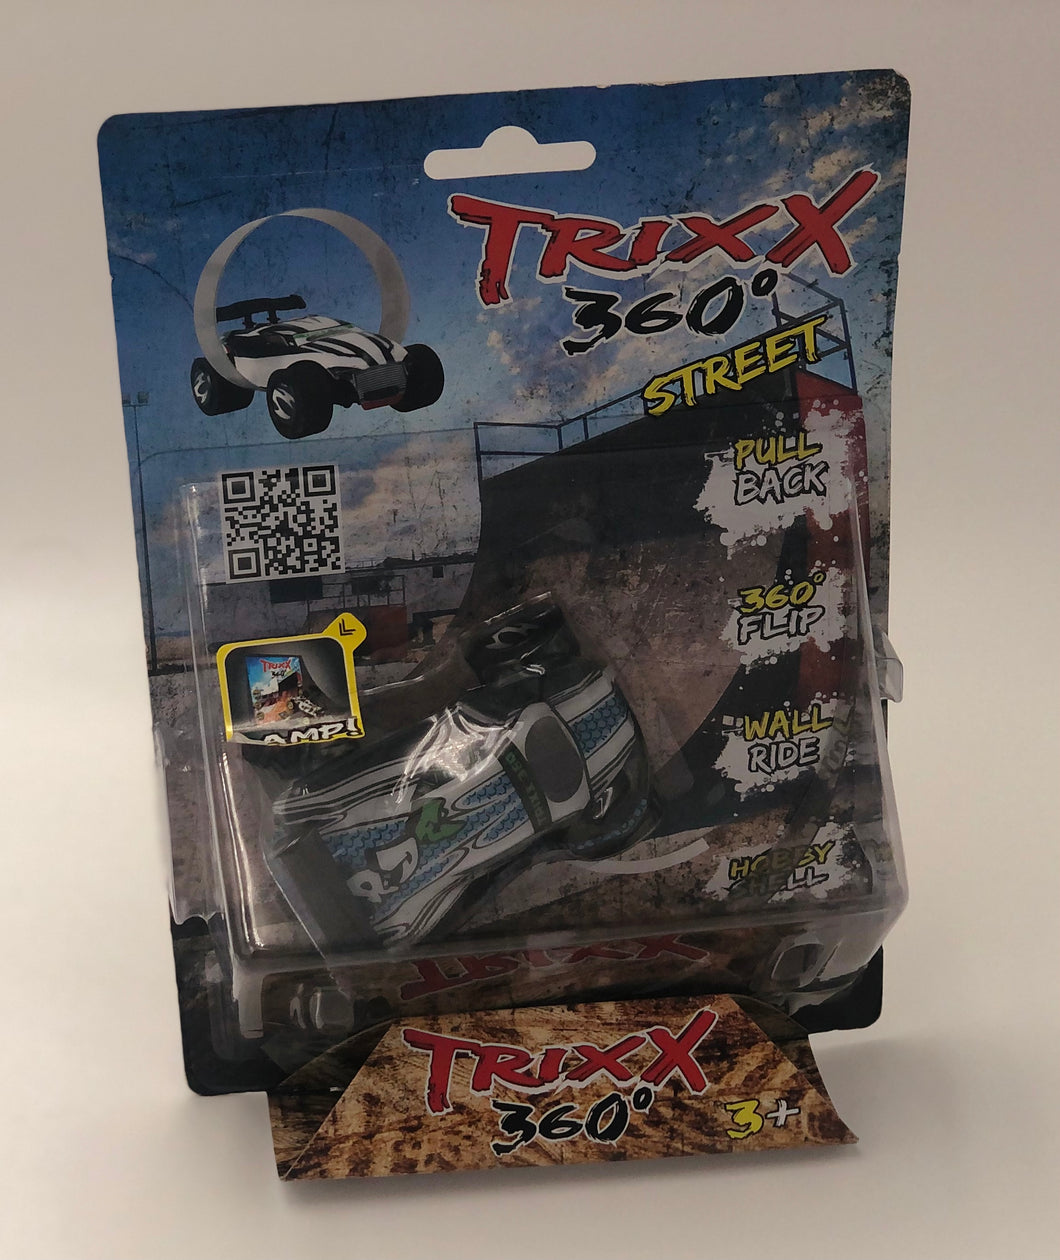 Single Pack Trixx 360 a Pull Back Stunt Car with RAMP, Friction Powered, Can do Power Slide, Wall Ride, 360 Flip, Back to Back. Invent your own Tricks, GREAT GIFT FOR 3 4 5 6 7 8 Year Old Boys Girls